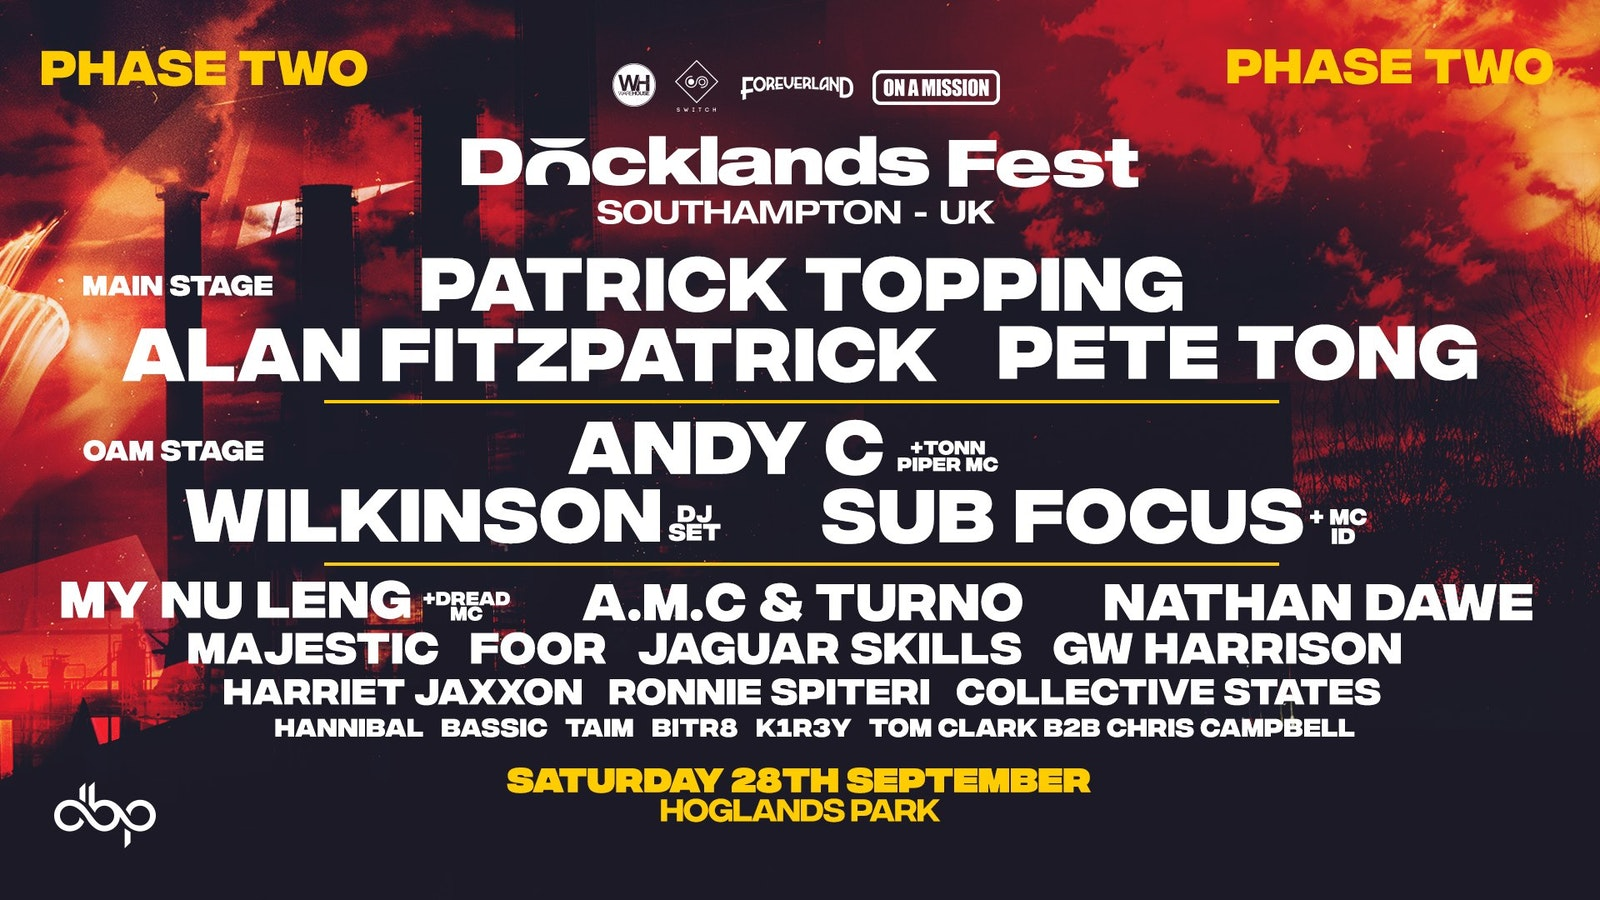 Docklands Festival Southampton – Final 1,000 Tickets Added – 28th September